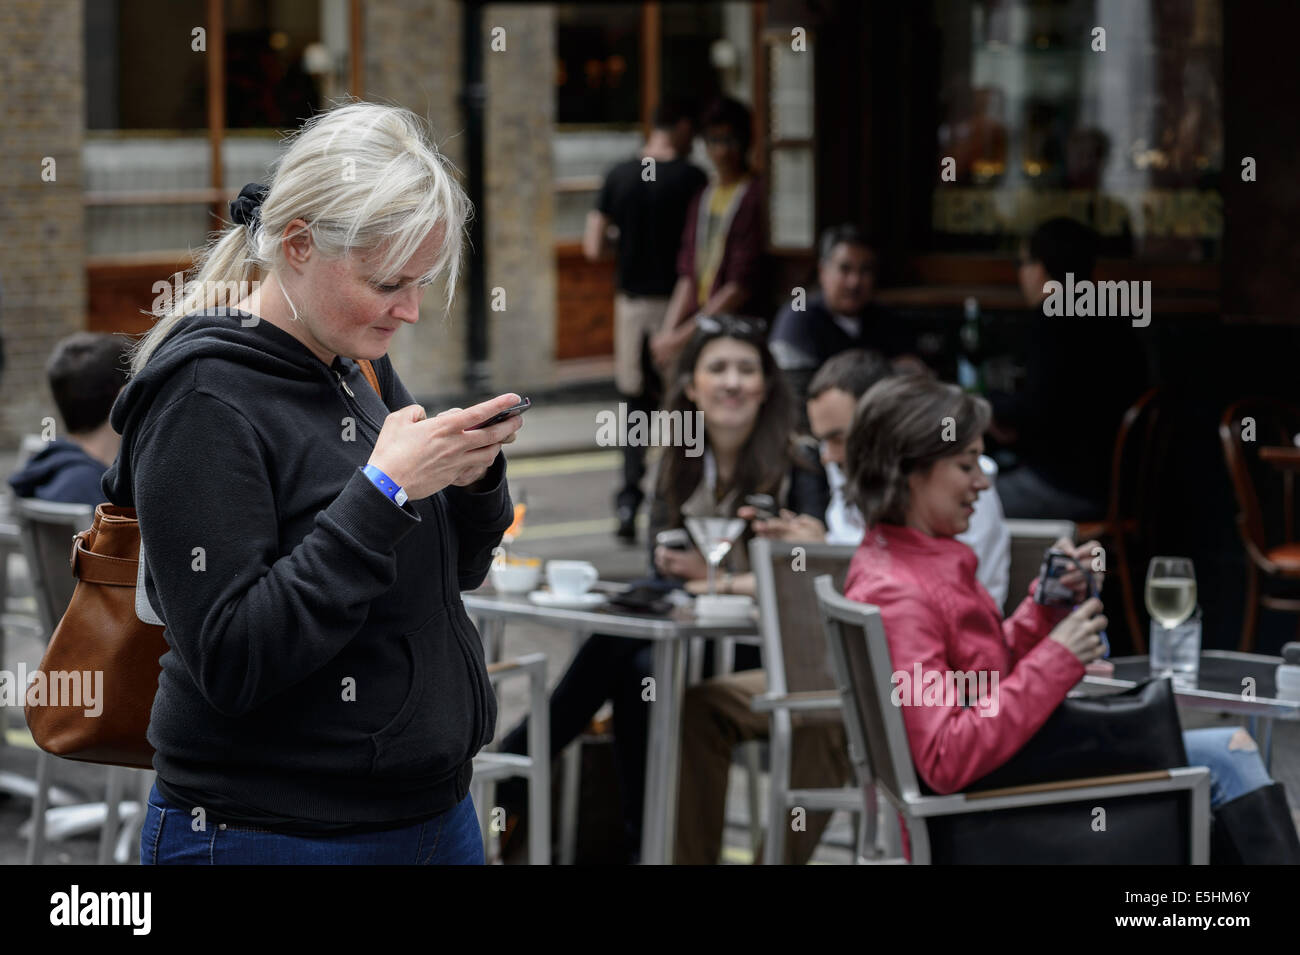 British blonde white woman sends reads a text message sms email on a smartphone smart phone. - Stock Image